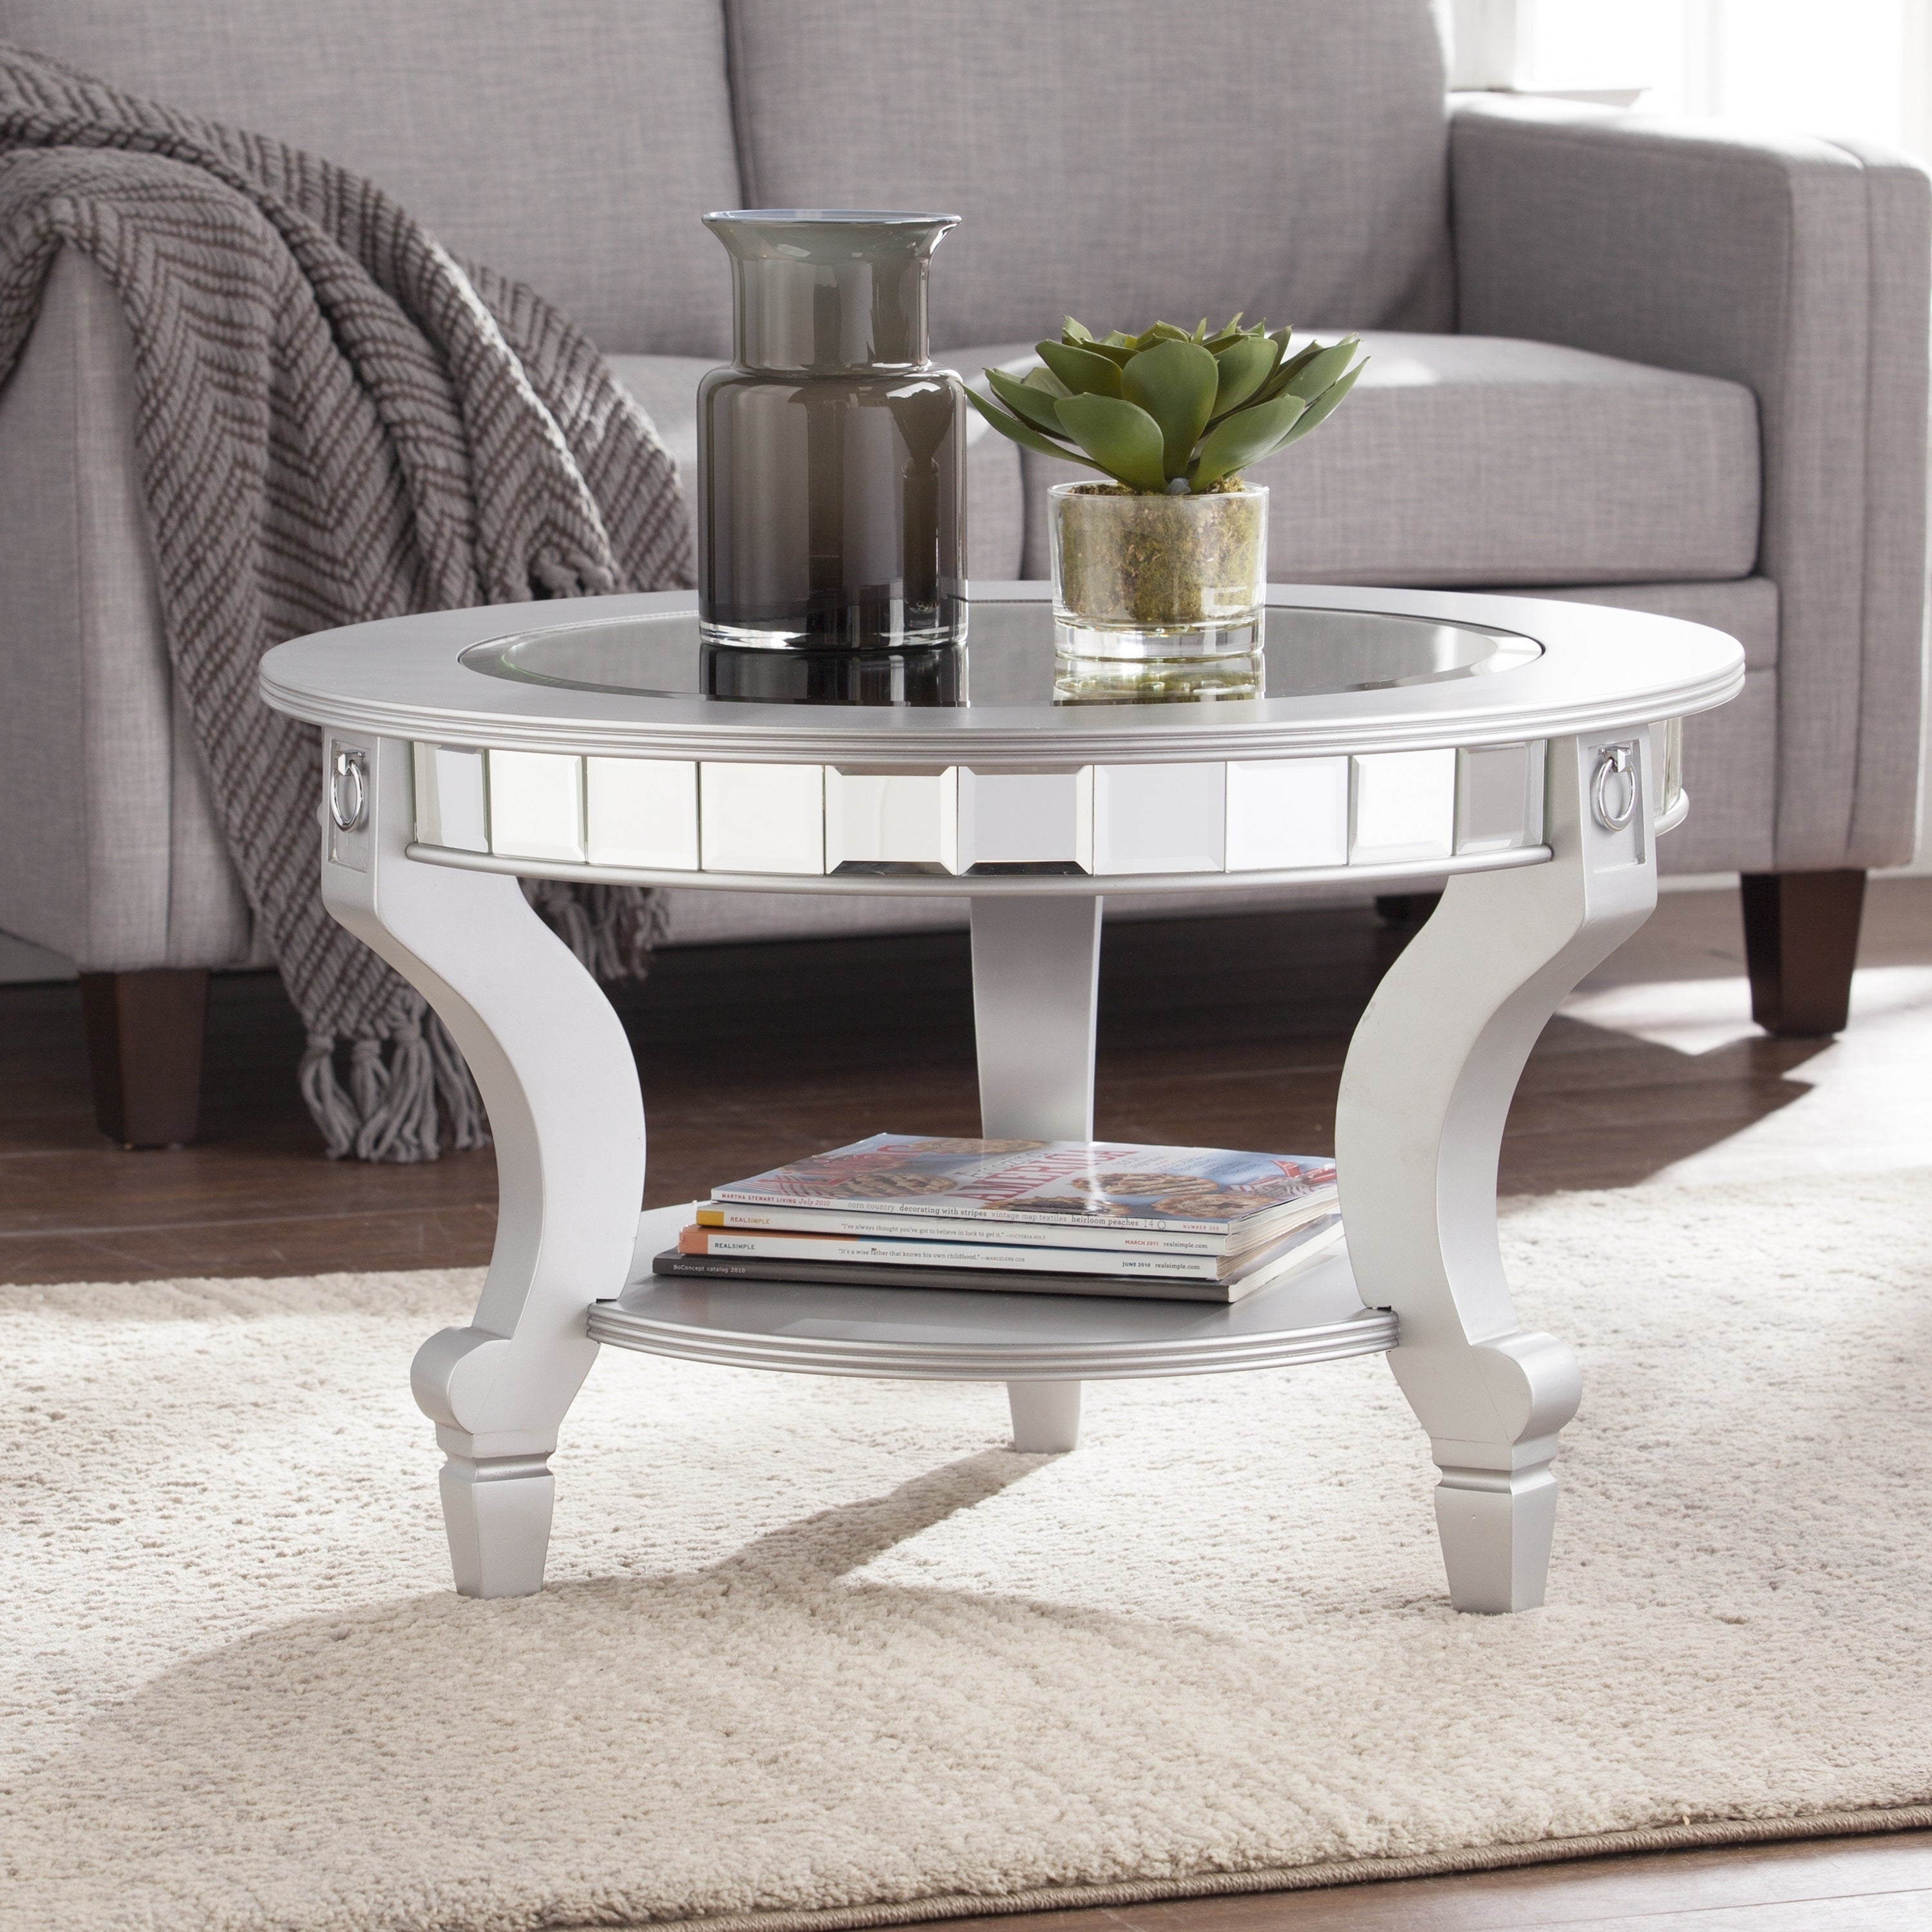 Silver Orchid Olivia Glam Mirrored Round Cocktail Table - Matte Silver (OS0832KC)